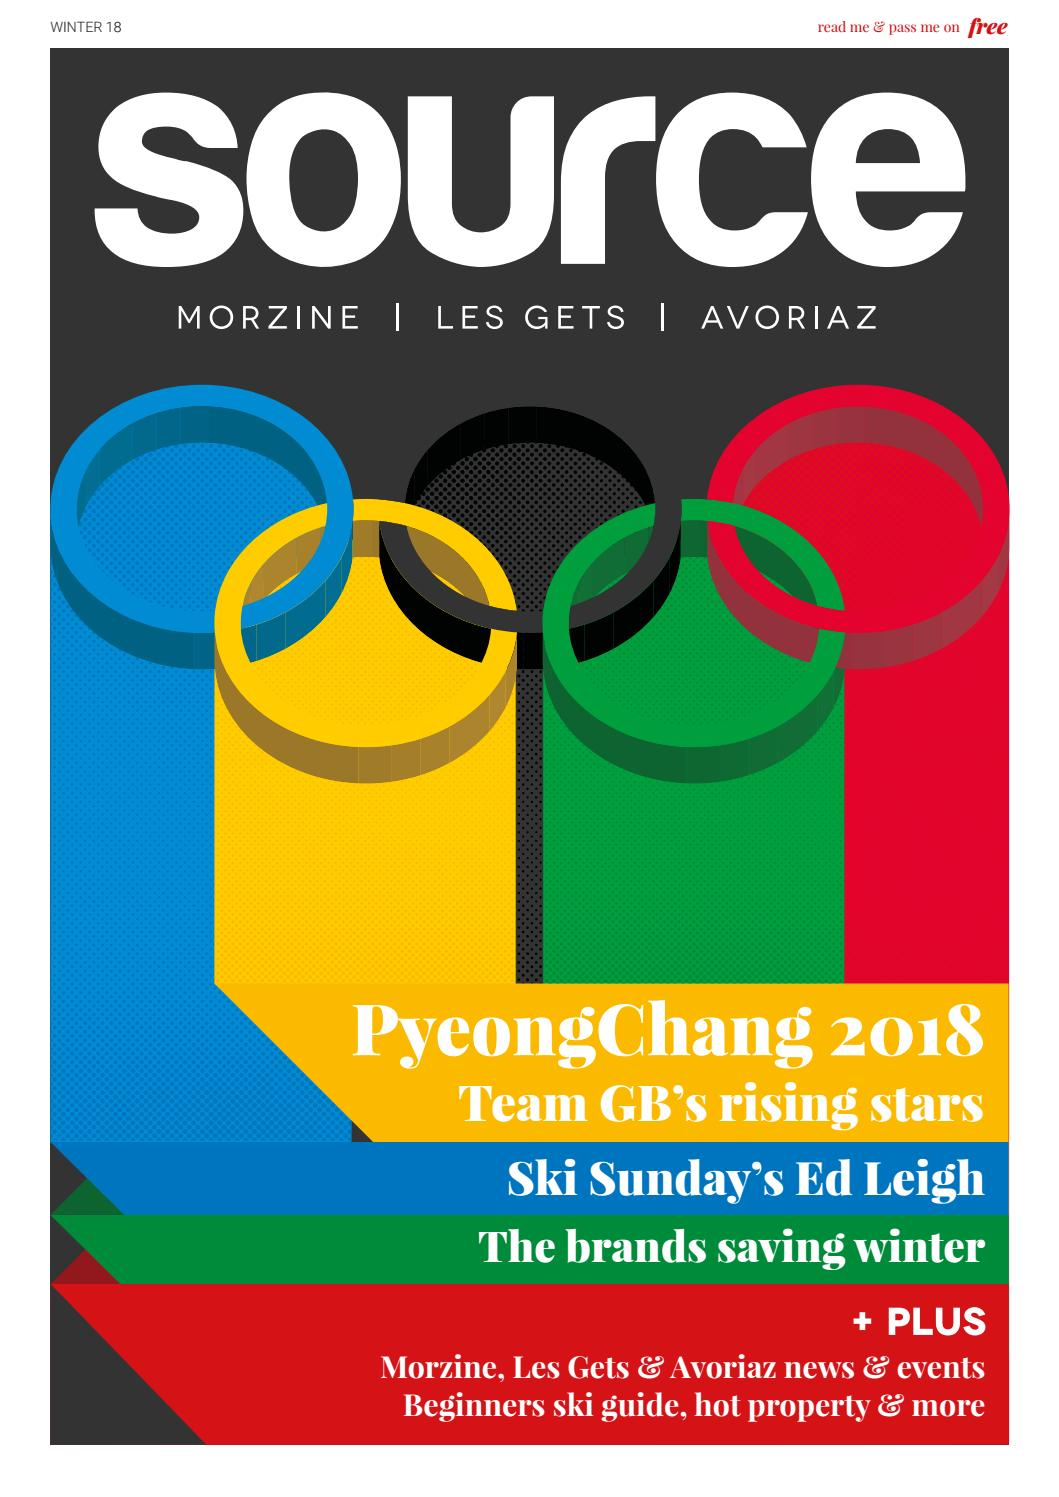 Morzine Source Magazine Issue 10 Winter 1718 By Origami